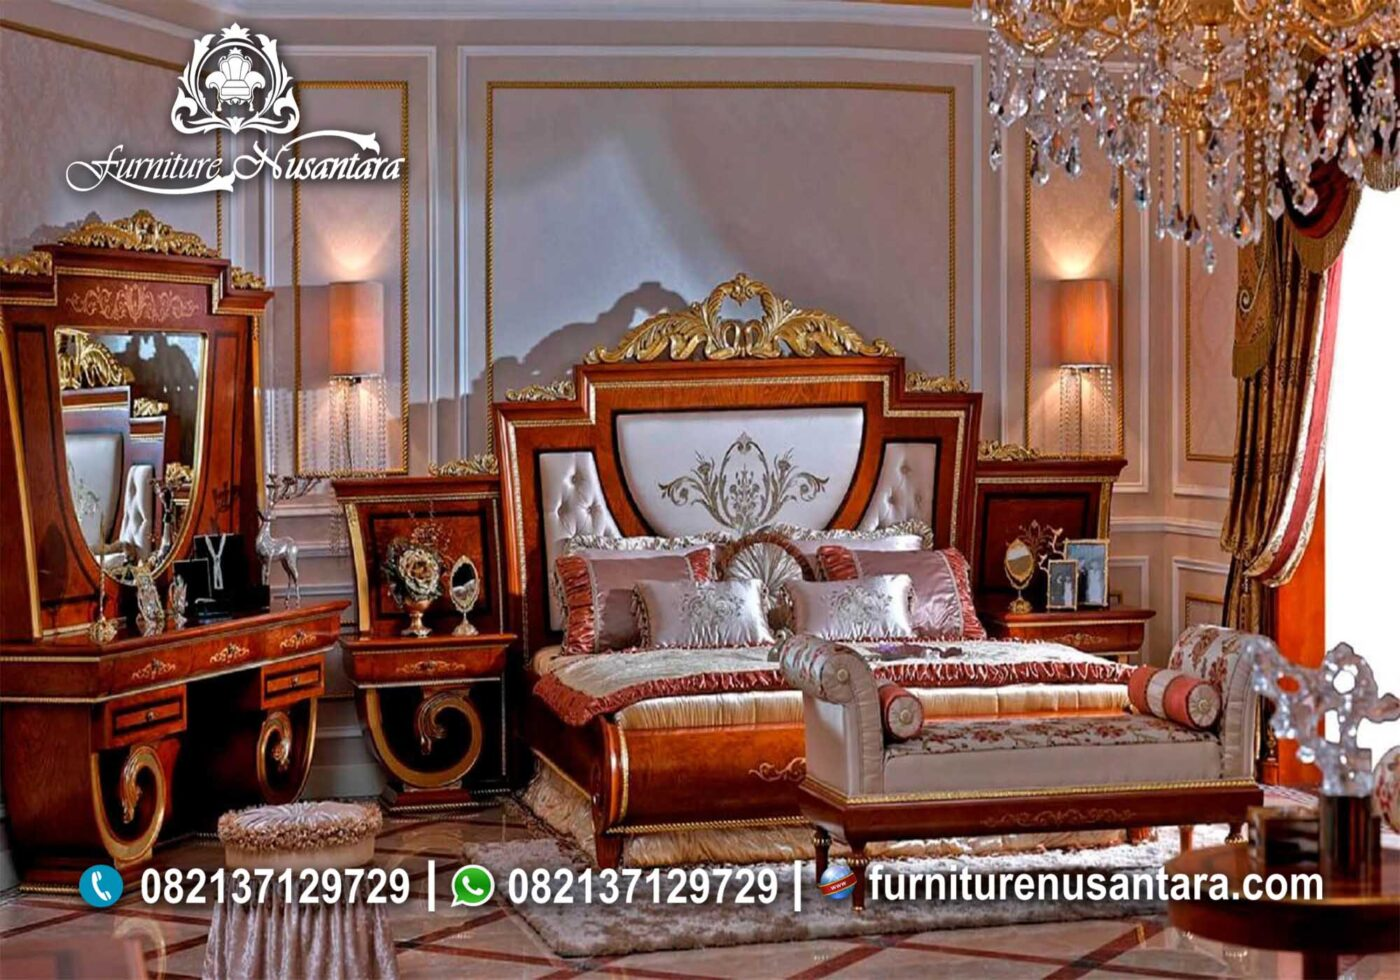 Bedset Ukir Mewah Turki KS-24, Furniture Nusantara